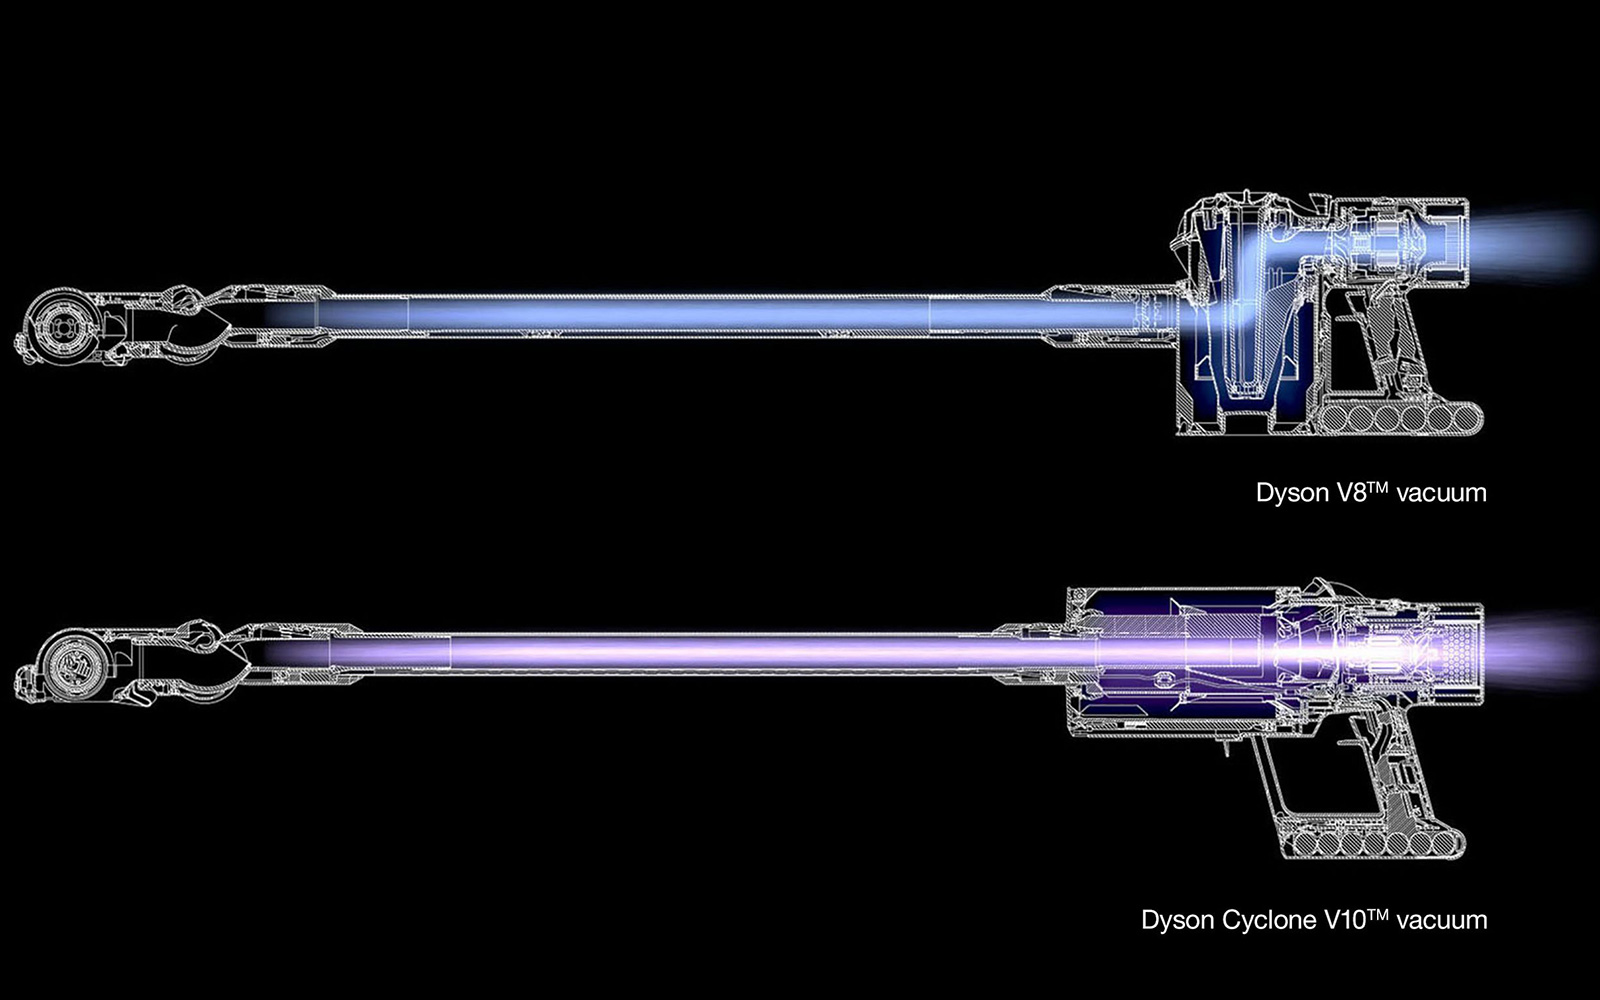 Dyson To Go All Cordless With Vacuums Starting With The Cyclone V10